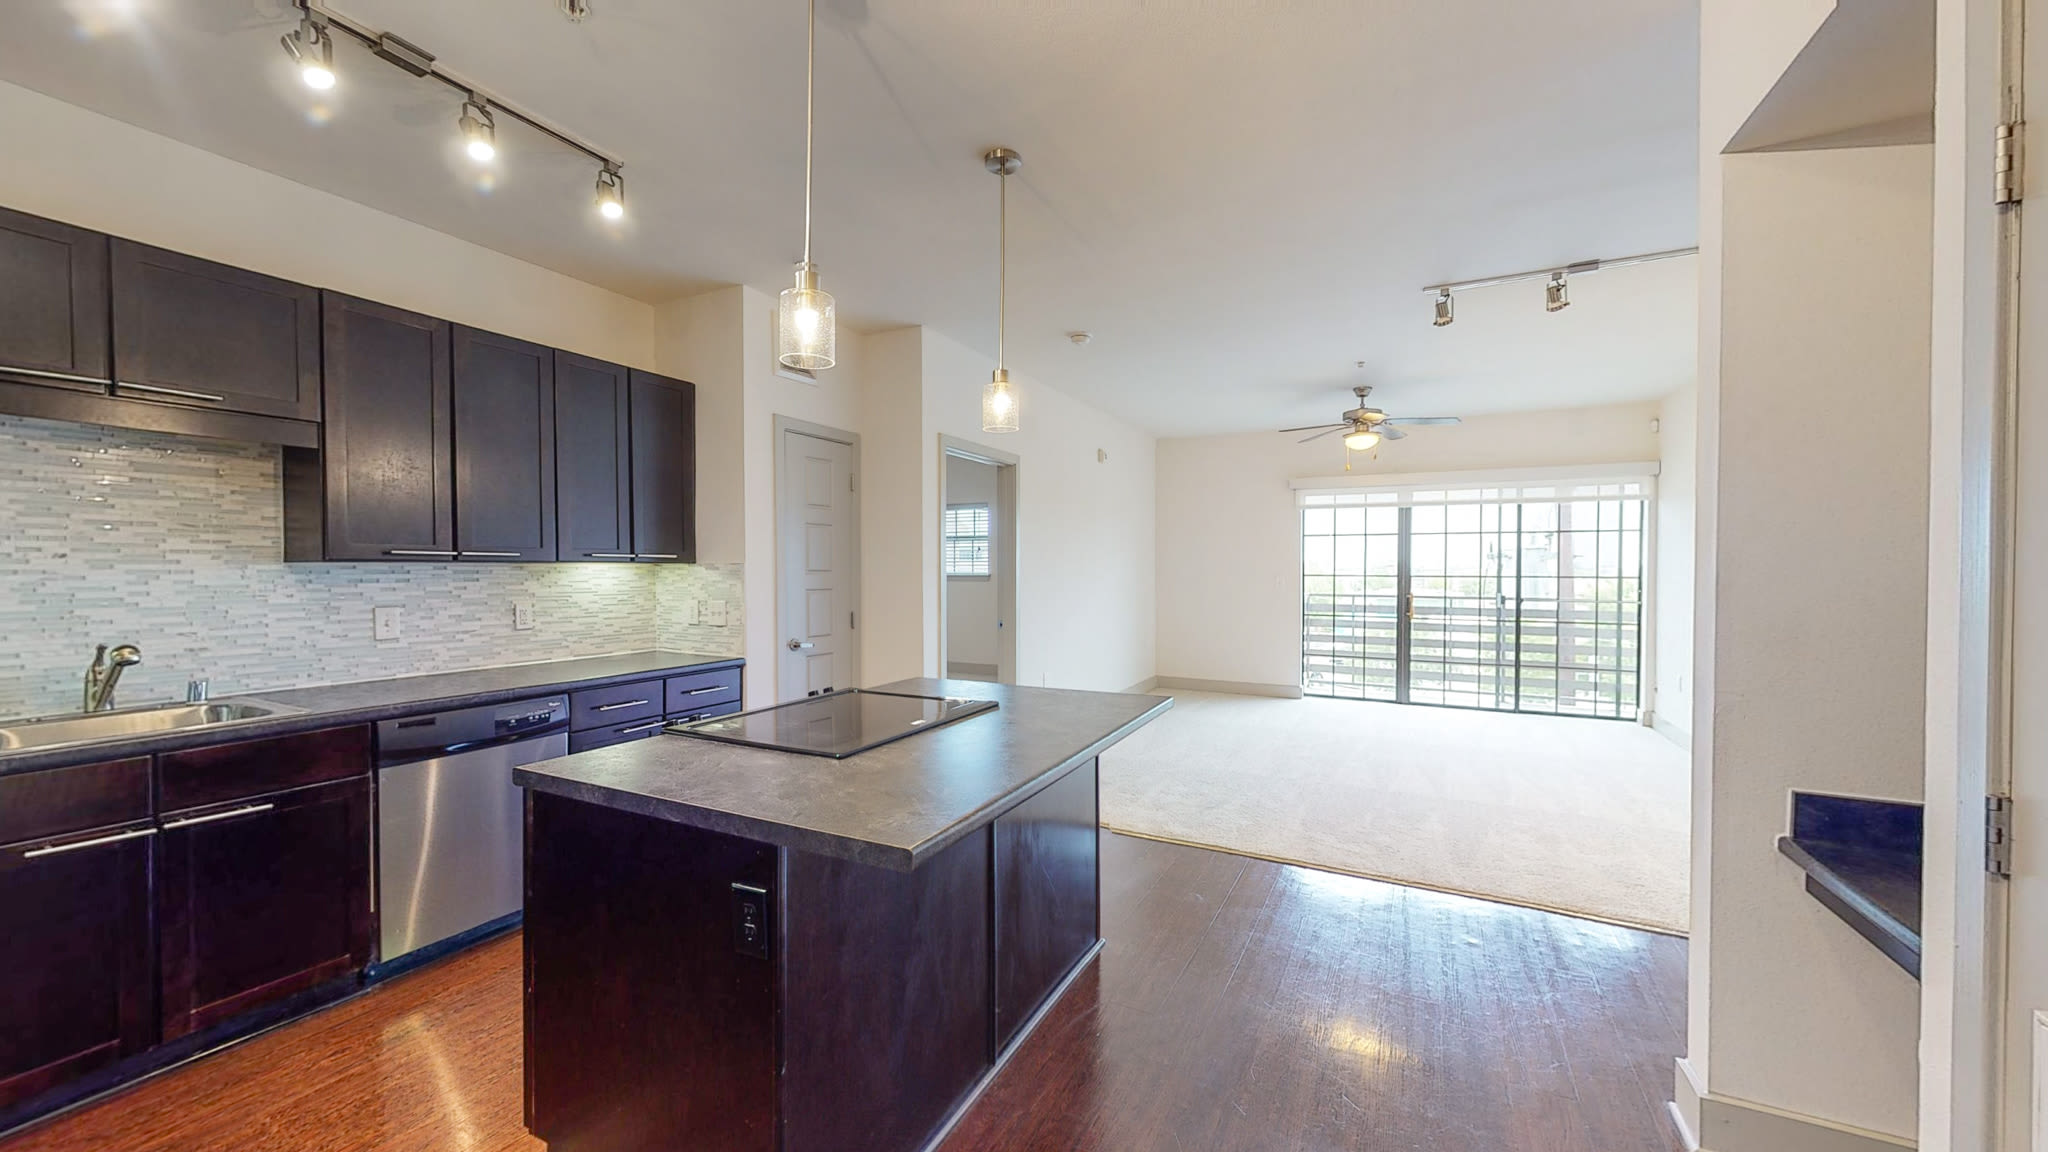 steel appliance kitchen with wood floors at Bellrock Bishop Arts in Dallas, Texas